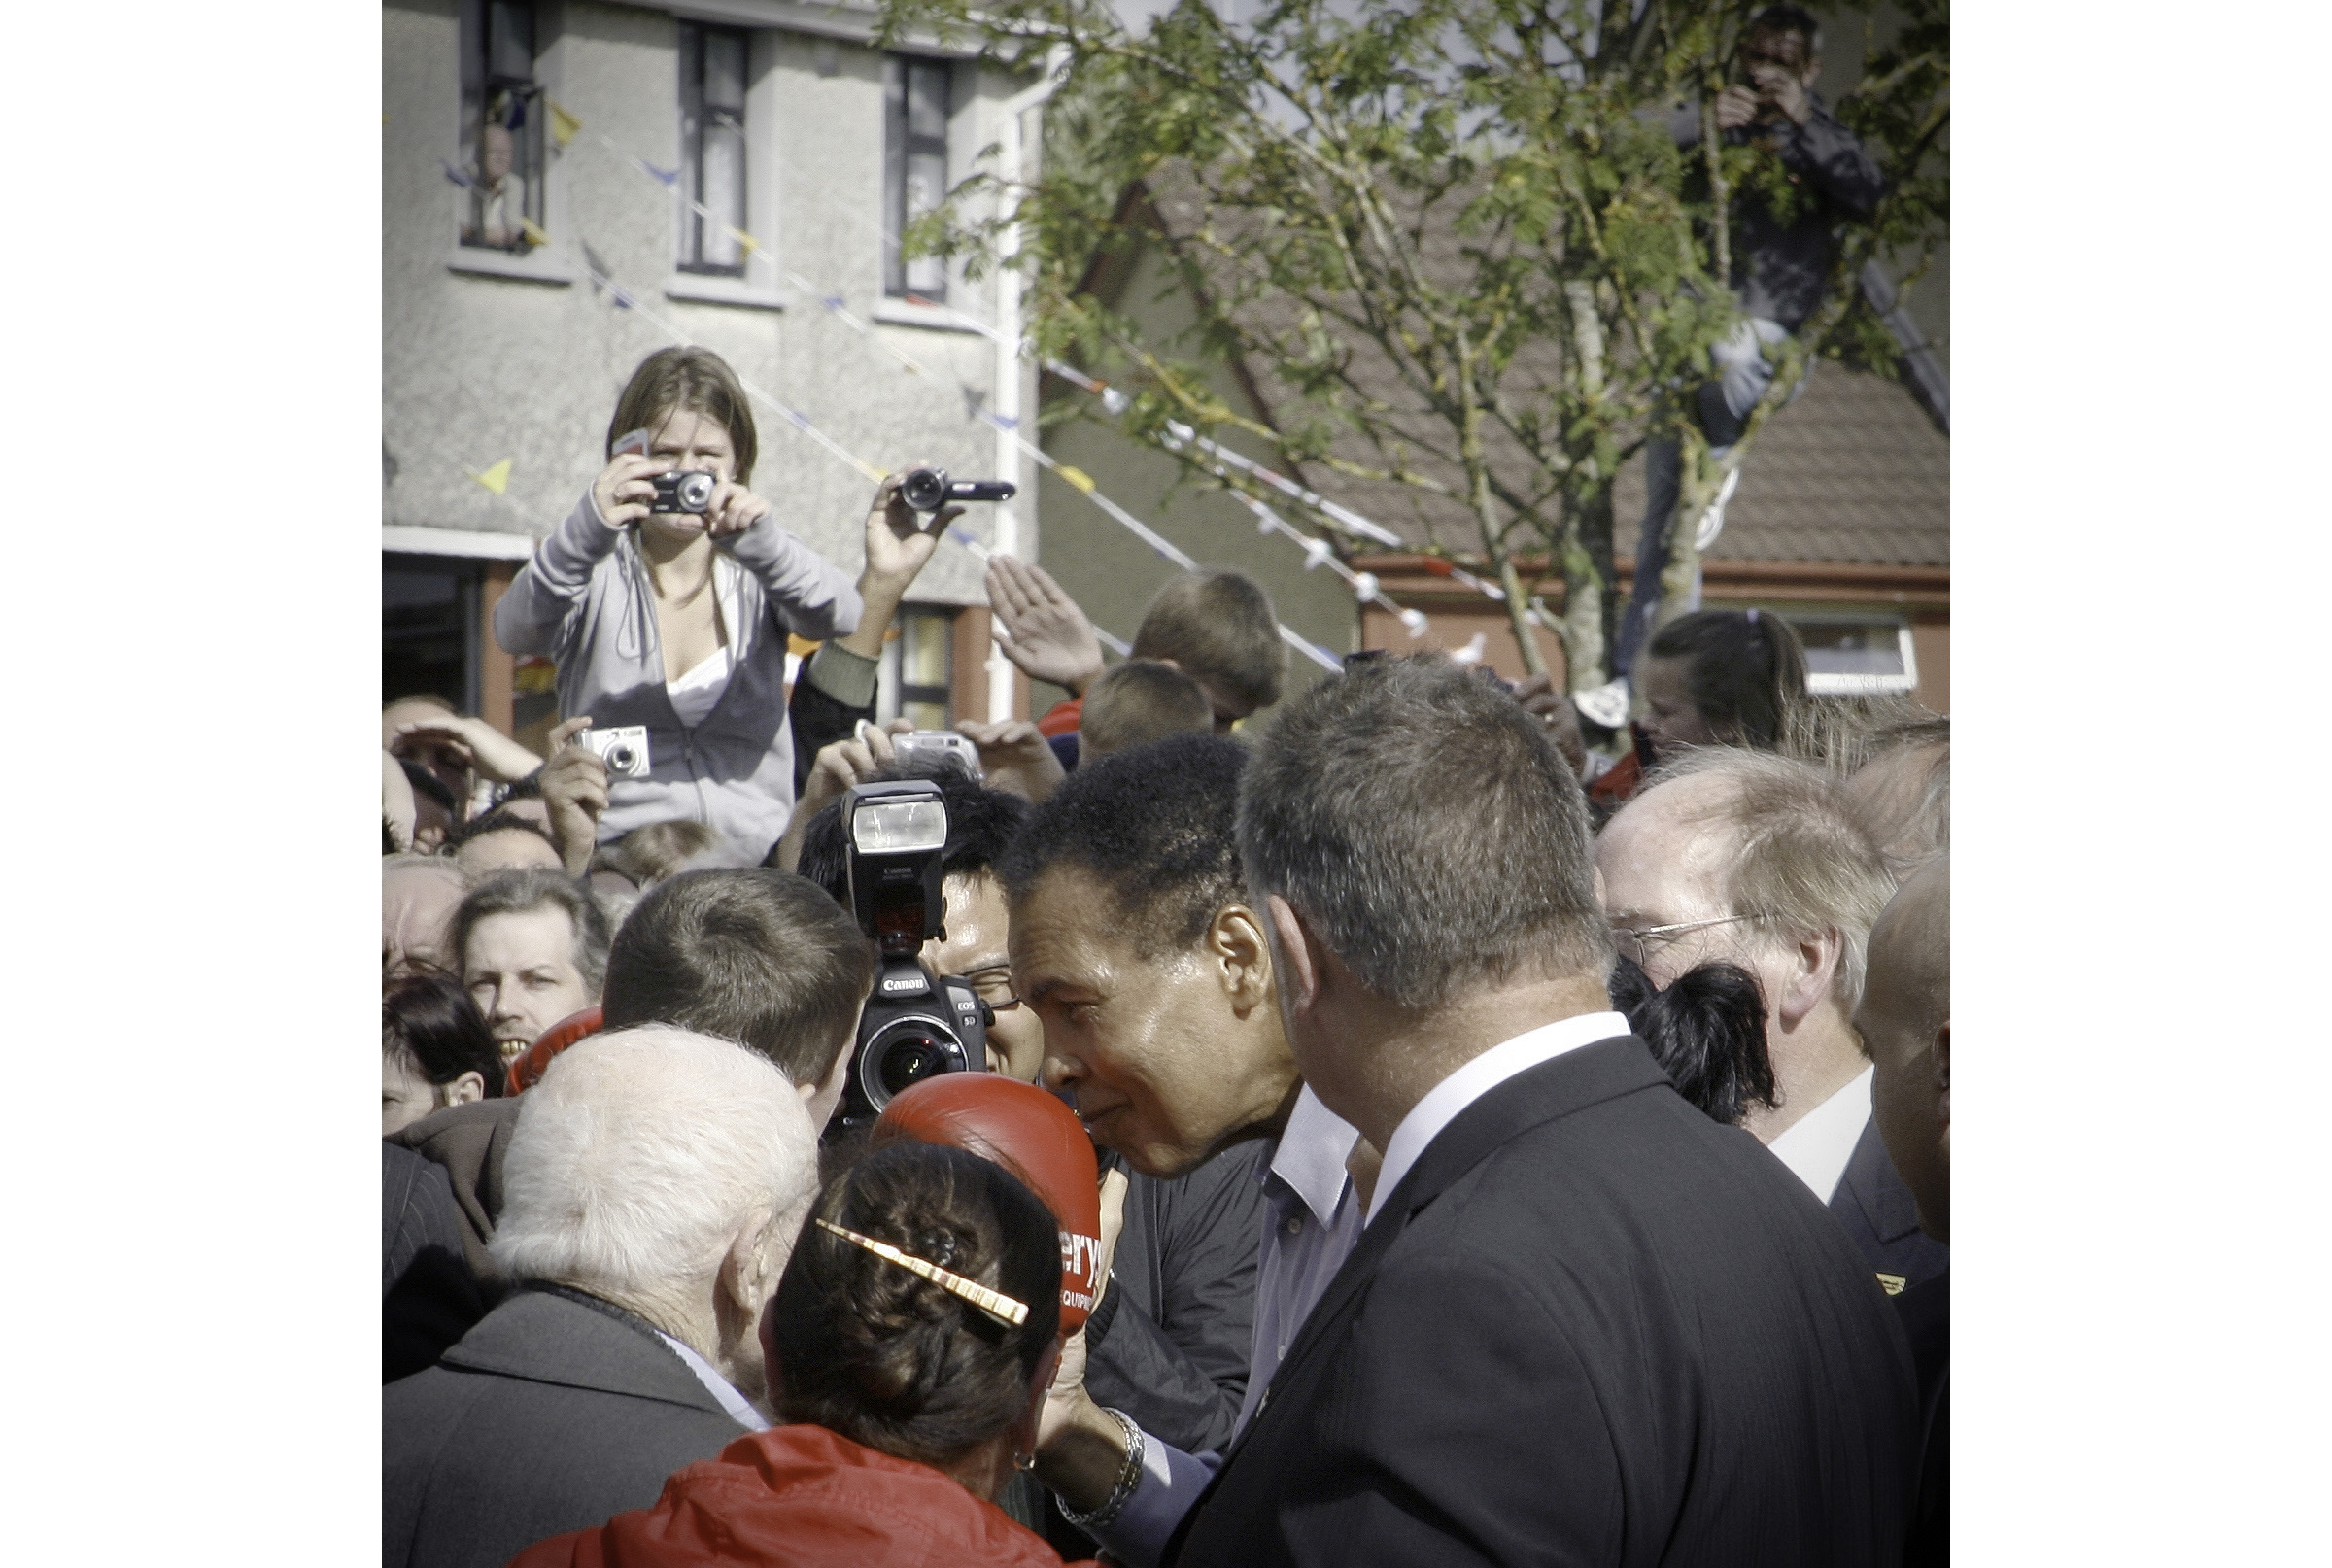 Mohammed Ali walks through the streets of Ennis. Photo courtesy of the author.